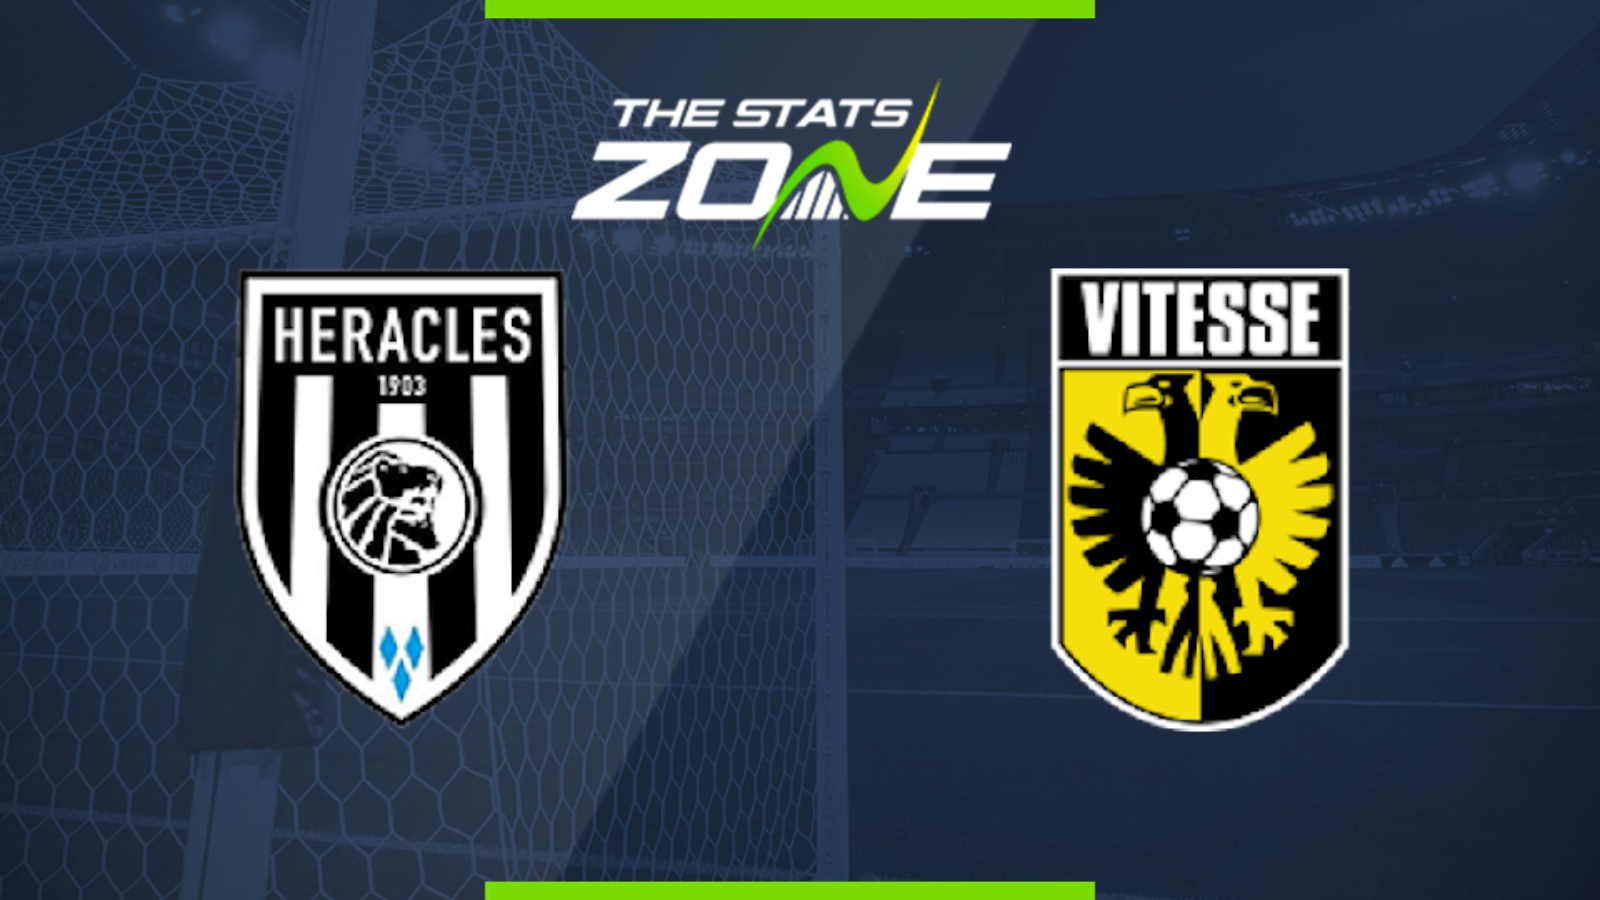 2019 20 Eredivisie Heracles Vs Vitesse Preview Prediction The Stats Zone